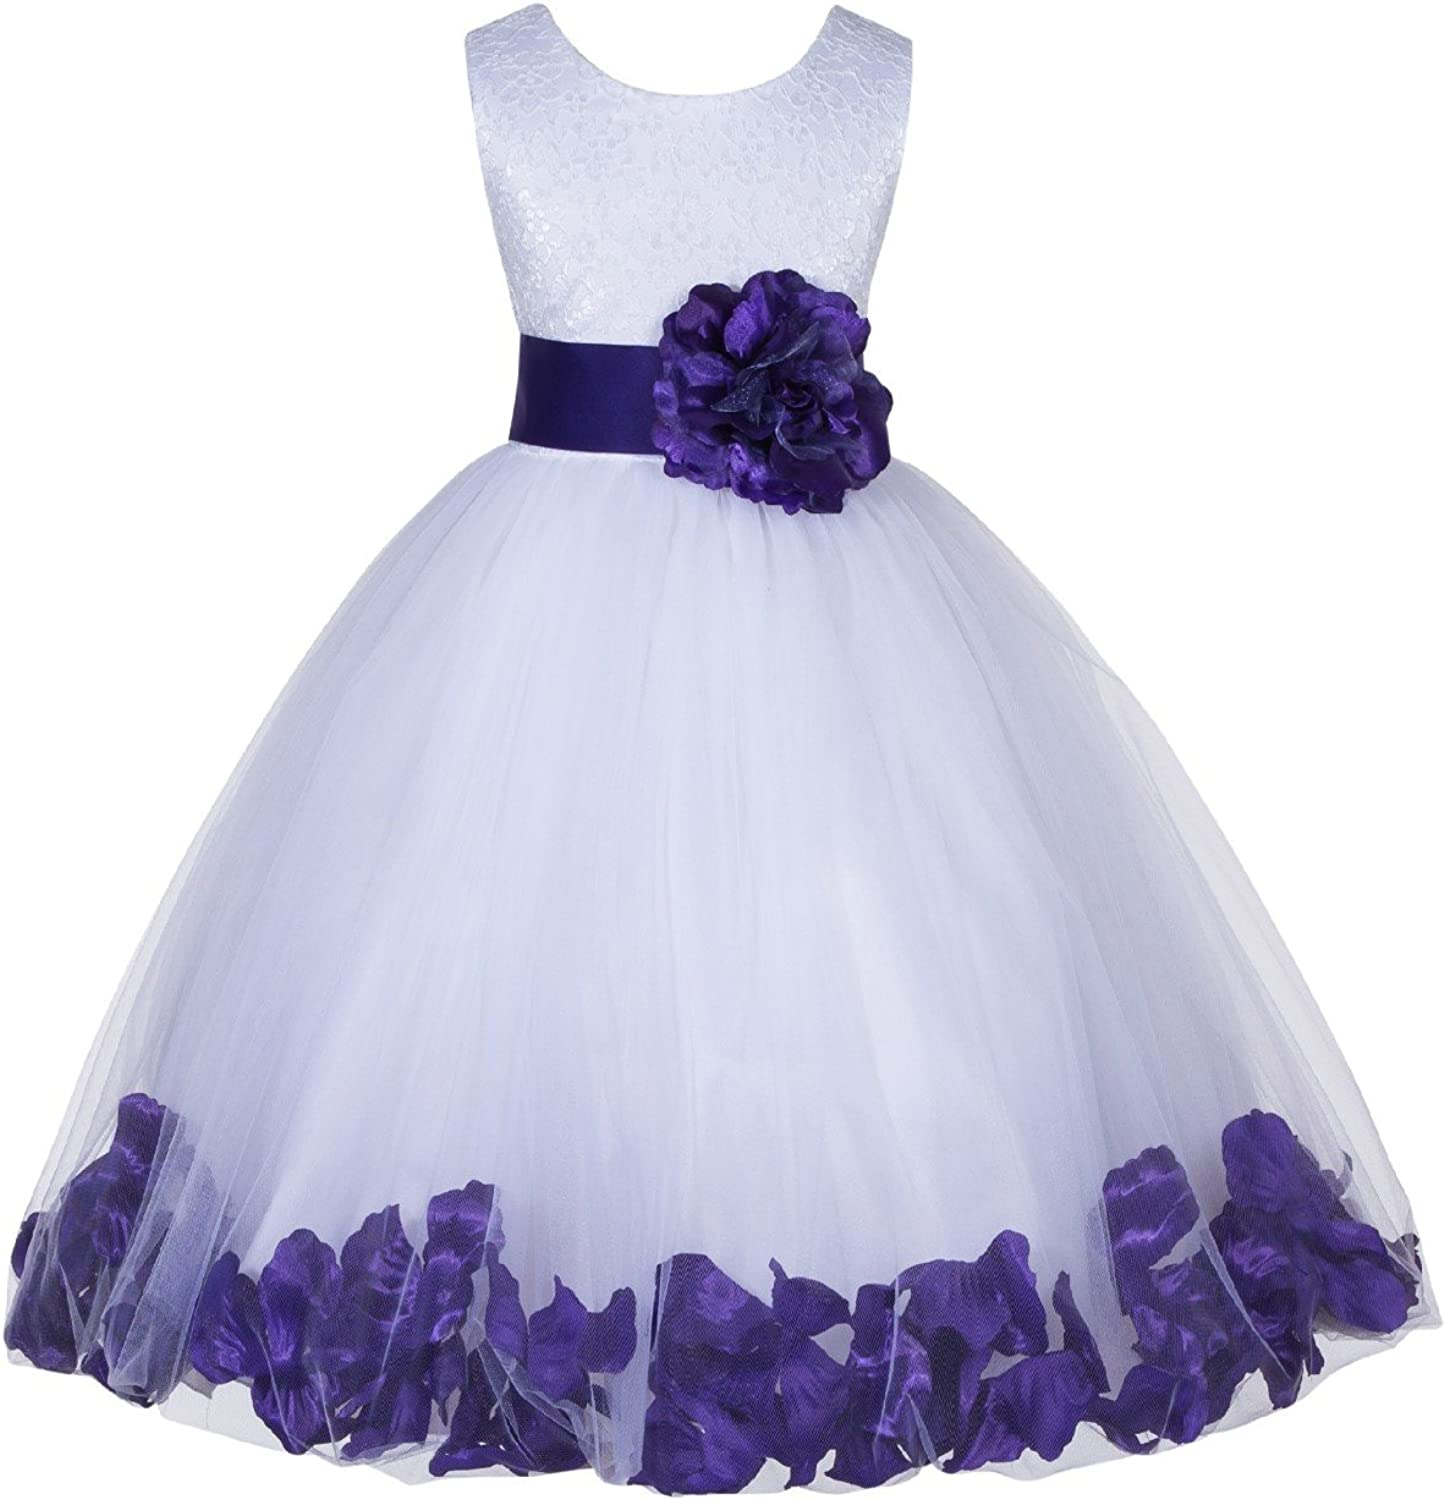 White Lace Top Tulle Floral Petal Formal Flower Girl Dresses Daily Dress 165S